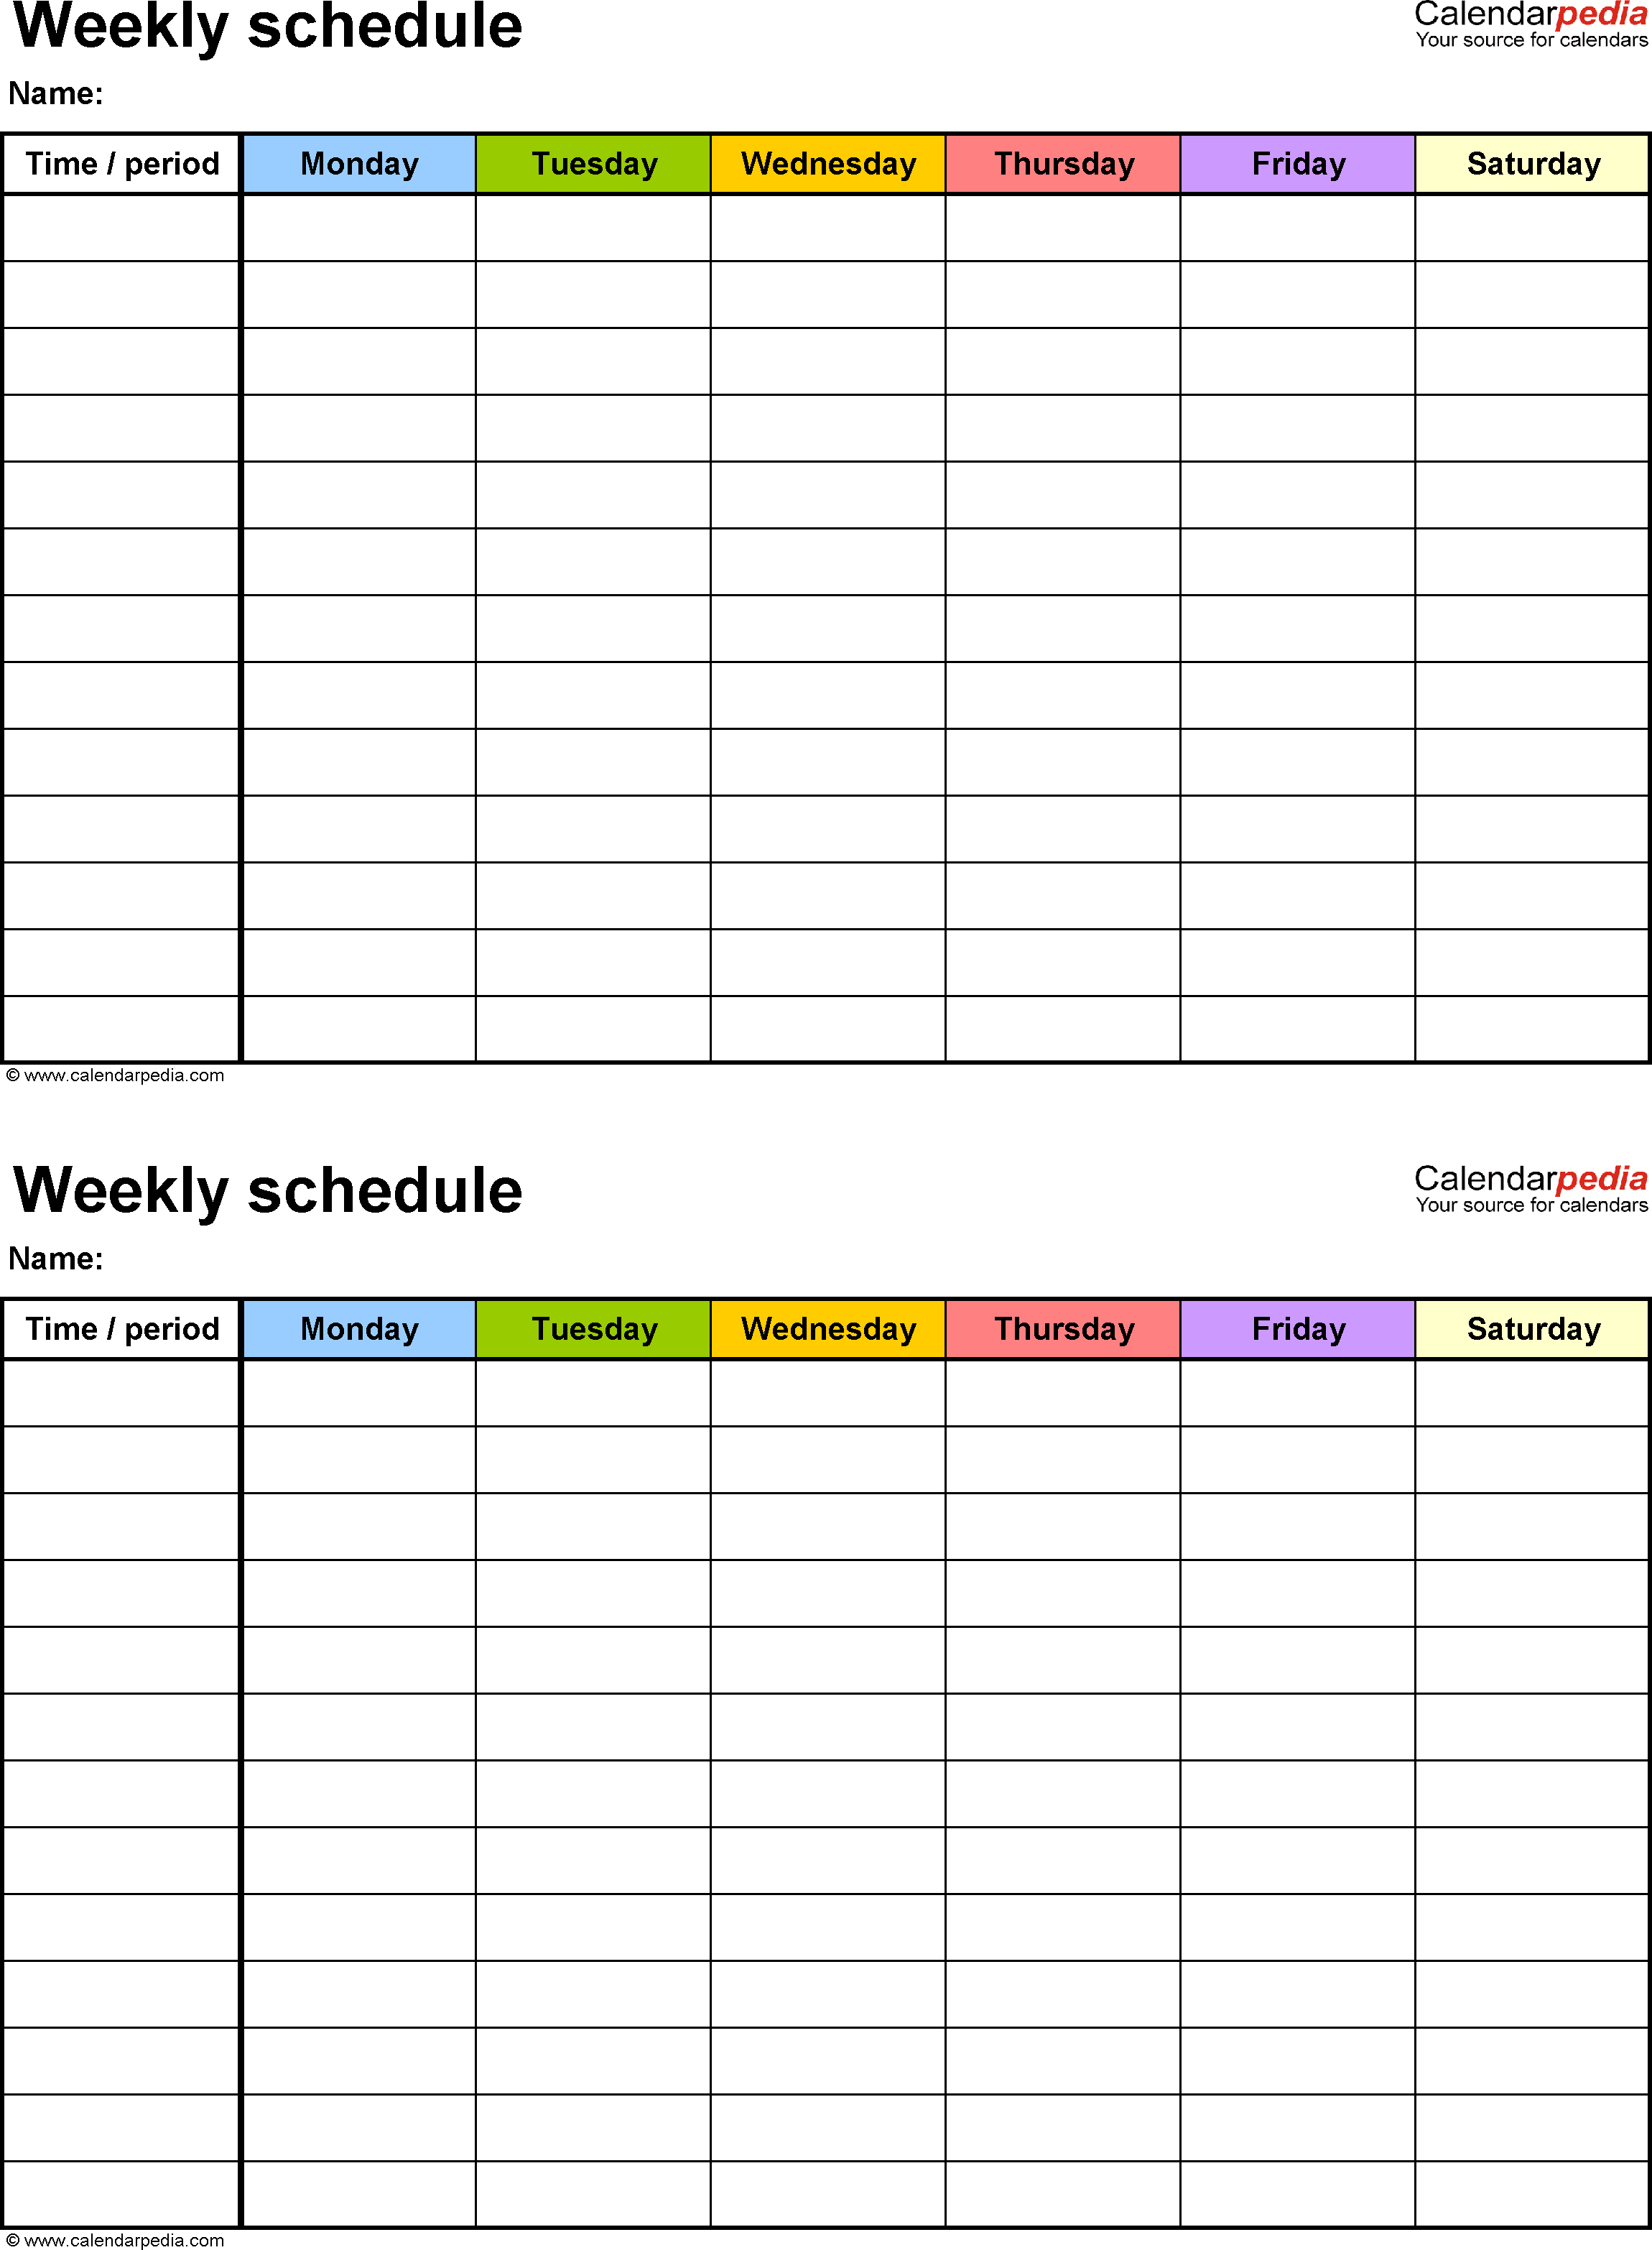 Free Weekly Schedule Templates For Excel   18 Templates With Employee Weekly Schedule Template Excel